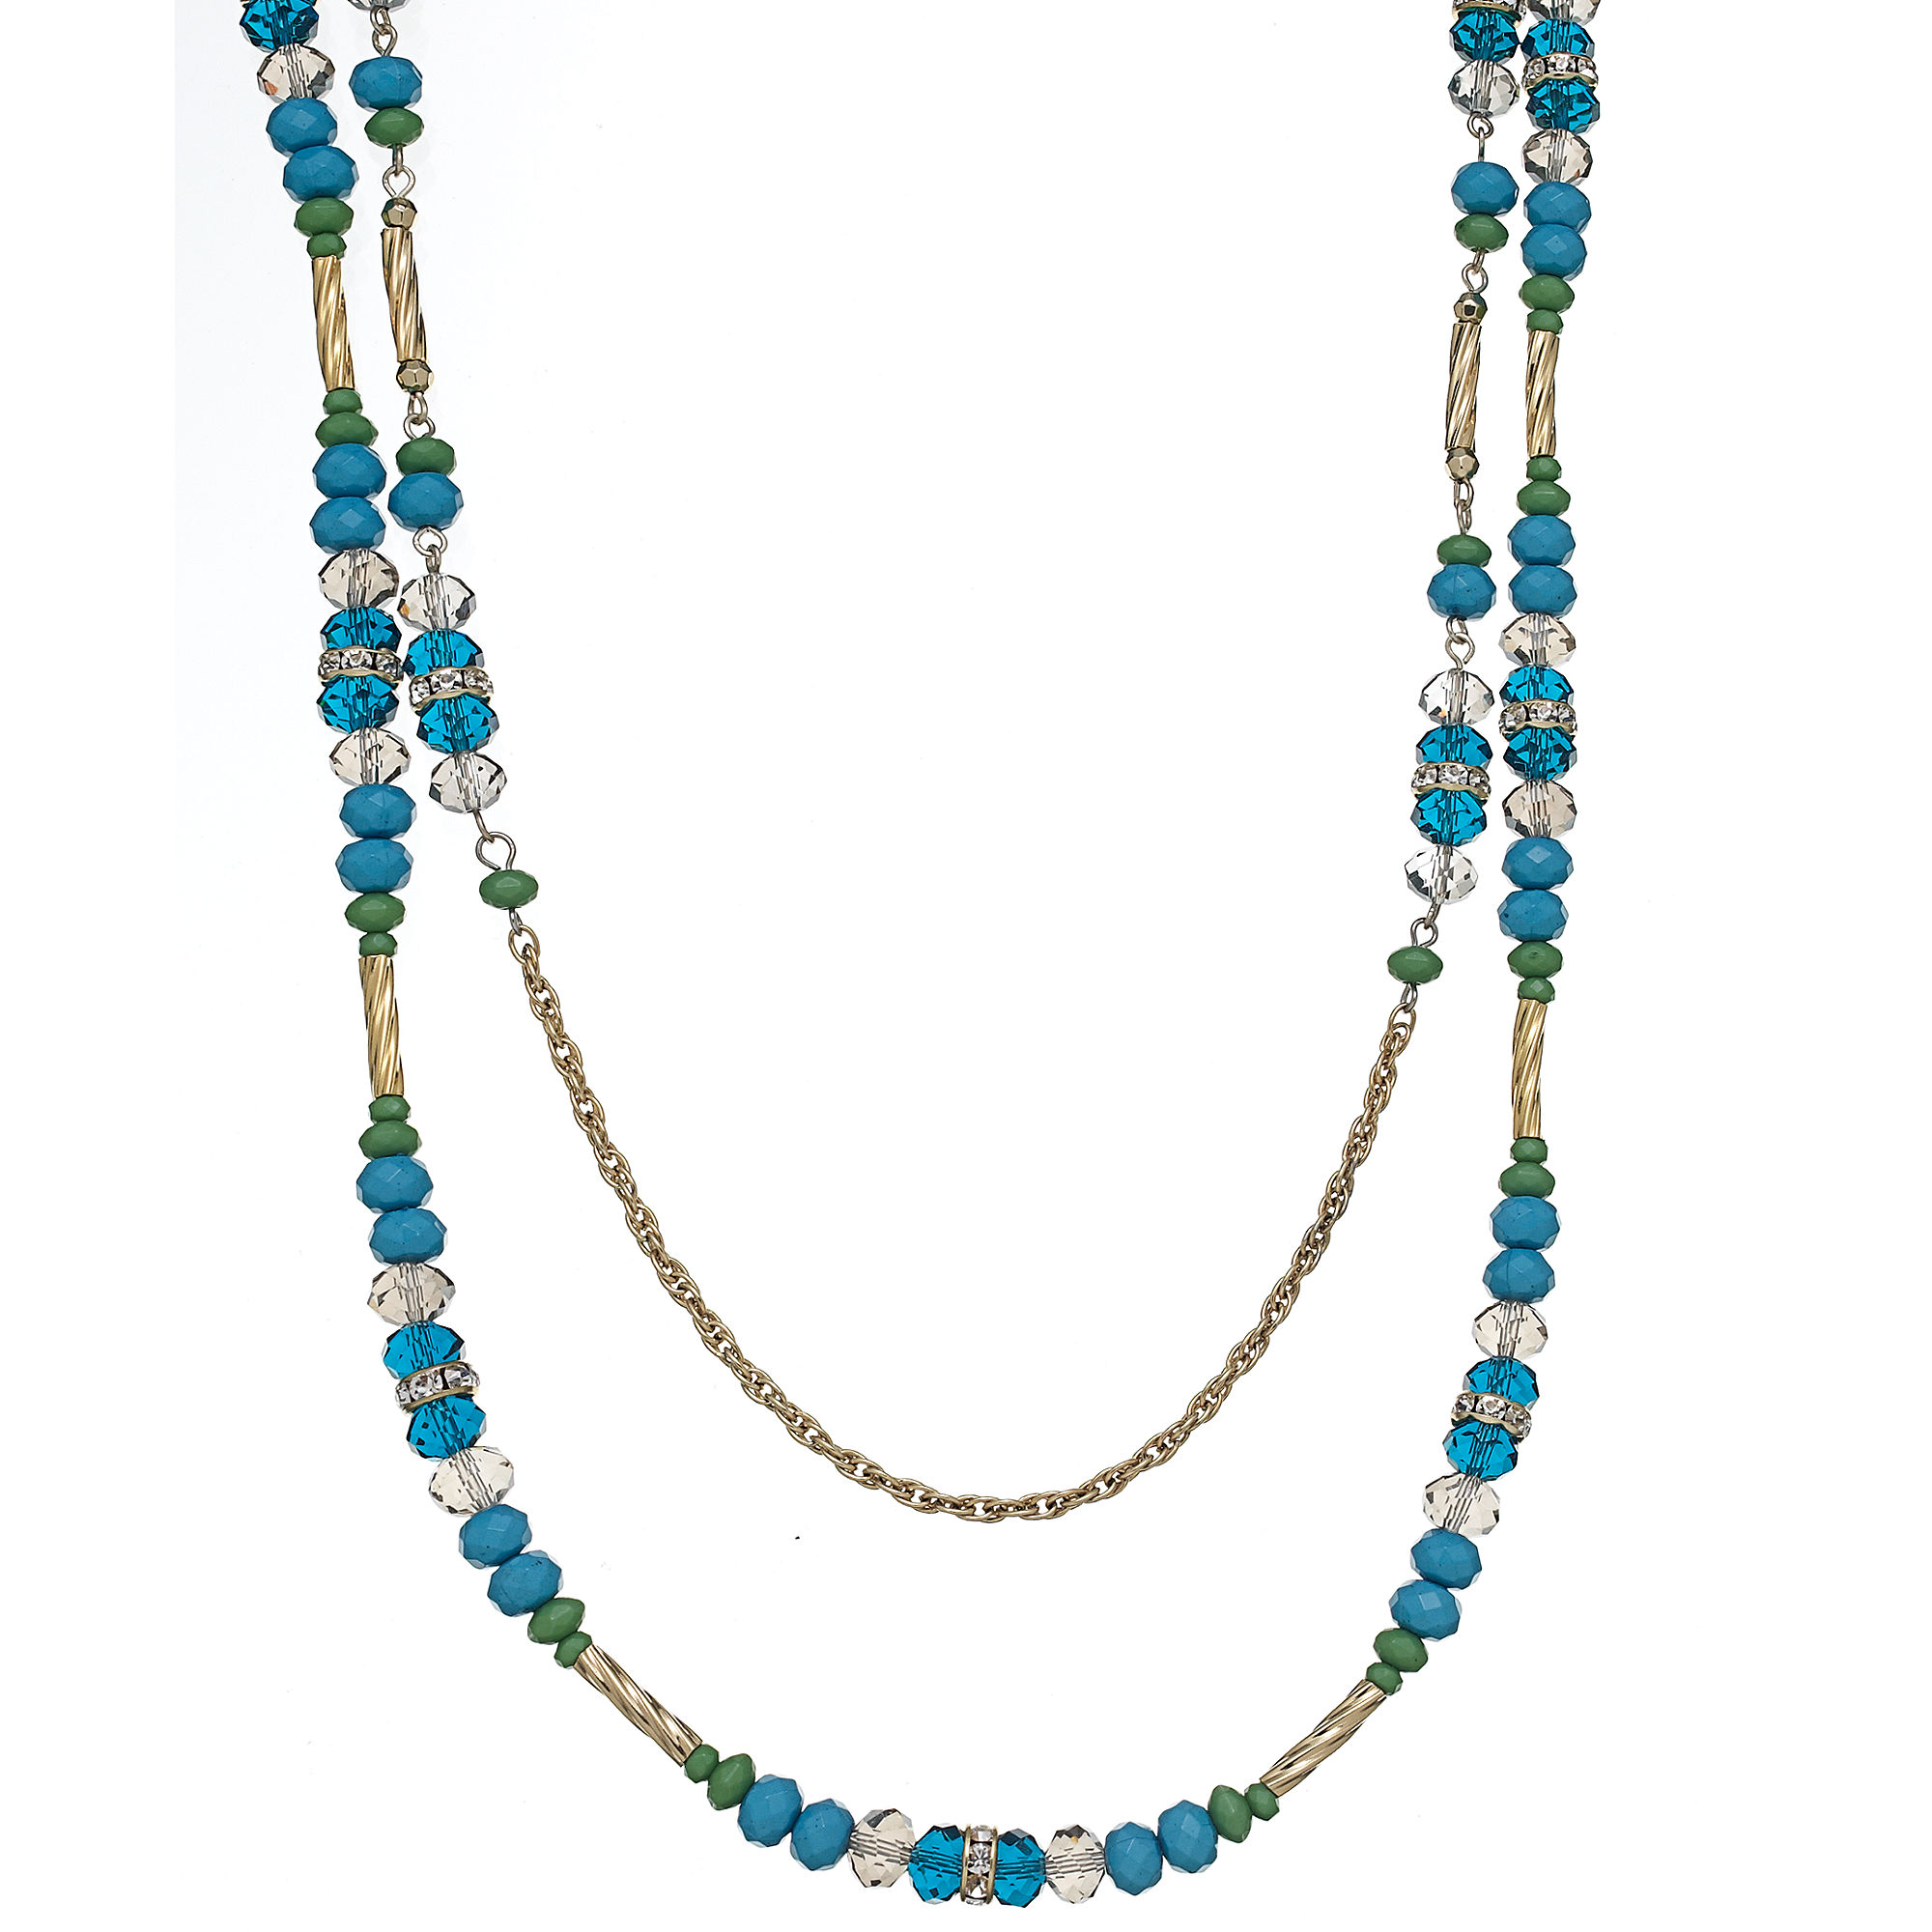 inc international concepts goldtone blue and green bead